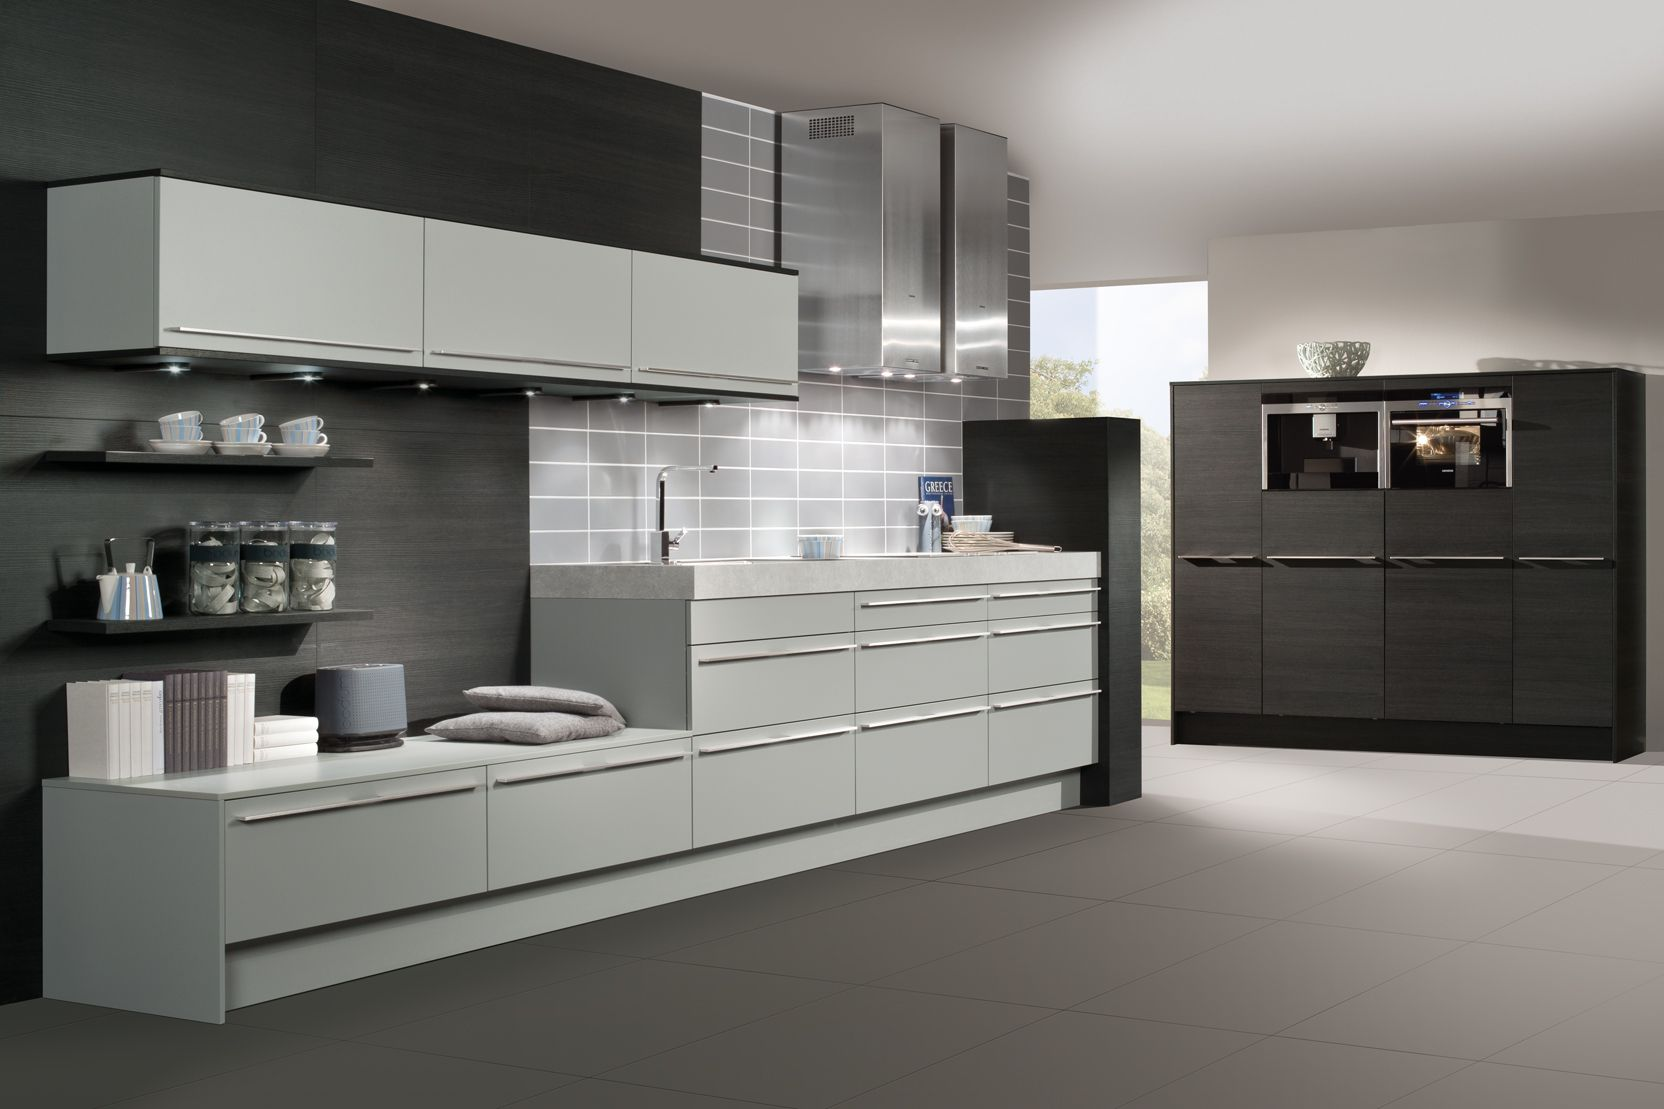 Elegant Black And White Themes German Kitchen Design Inspirations With Modern Gray Scheme Base Kitchen Cabinet That Have Storage Space And Minimalist Wall